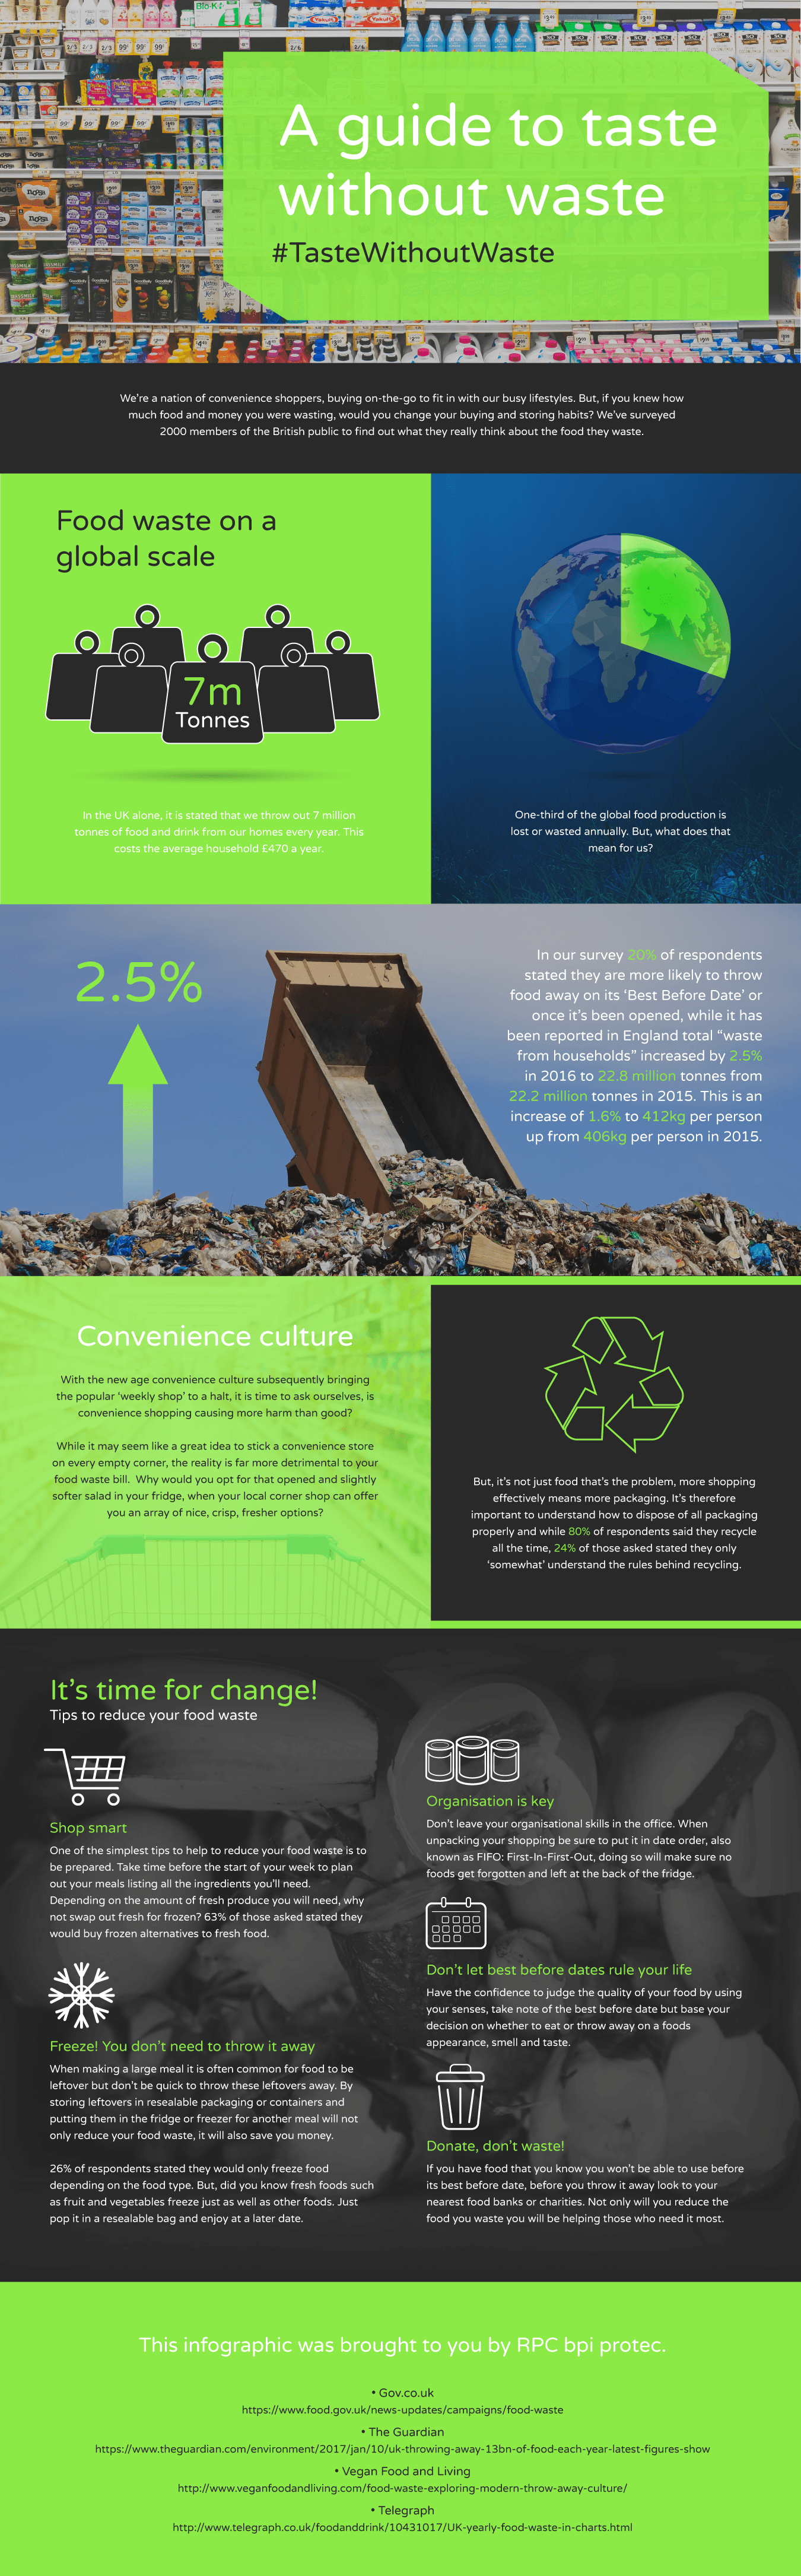 infographic on how to reduce food waste at home